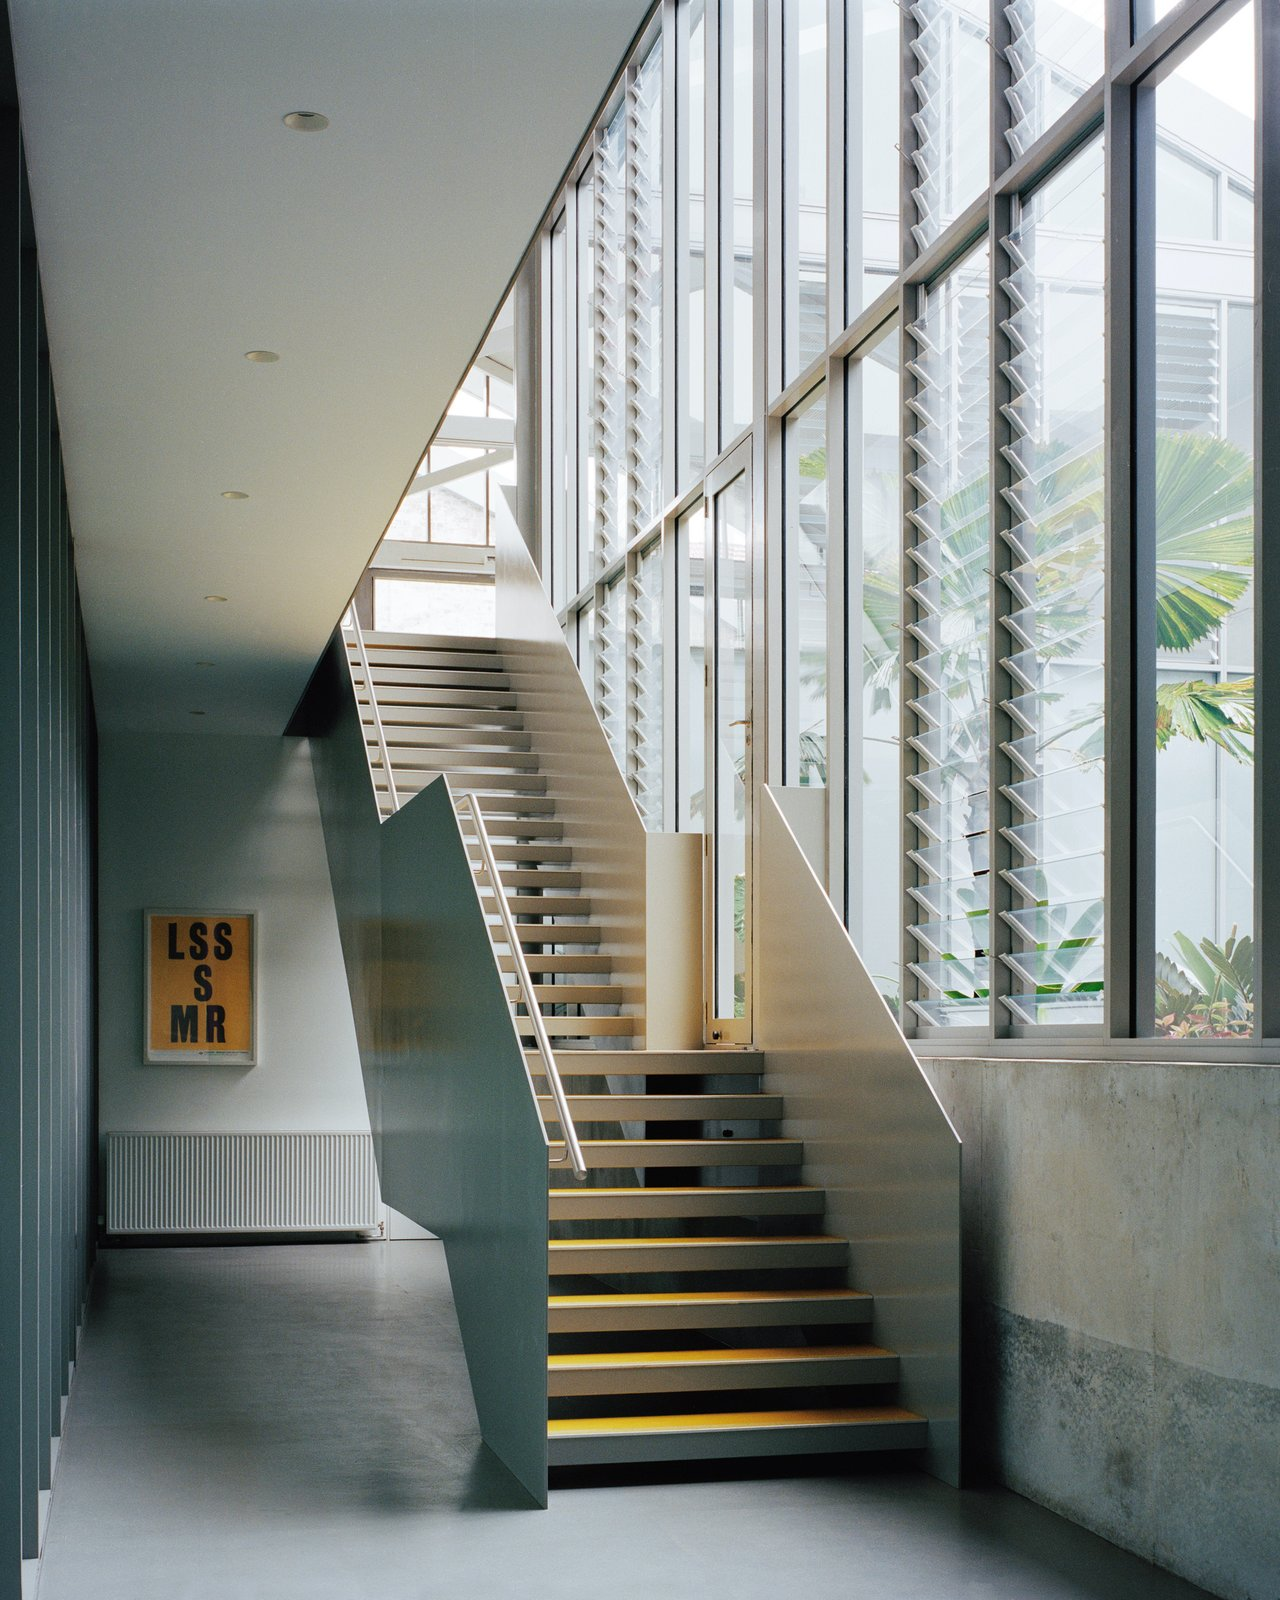 Hallway of Redfern Warehouse by Ian Moore Architects.